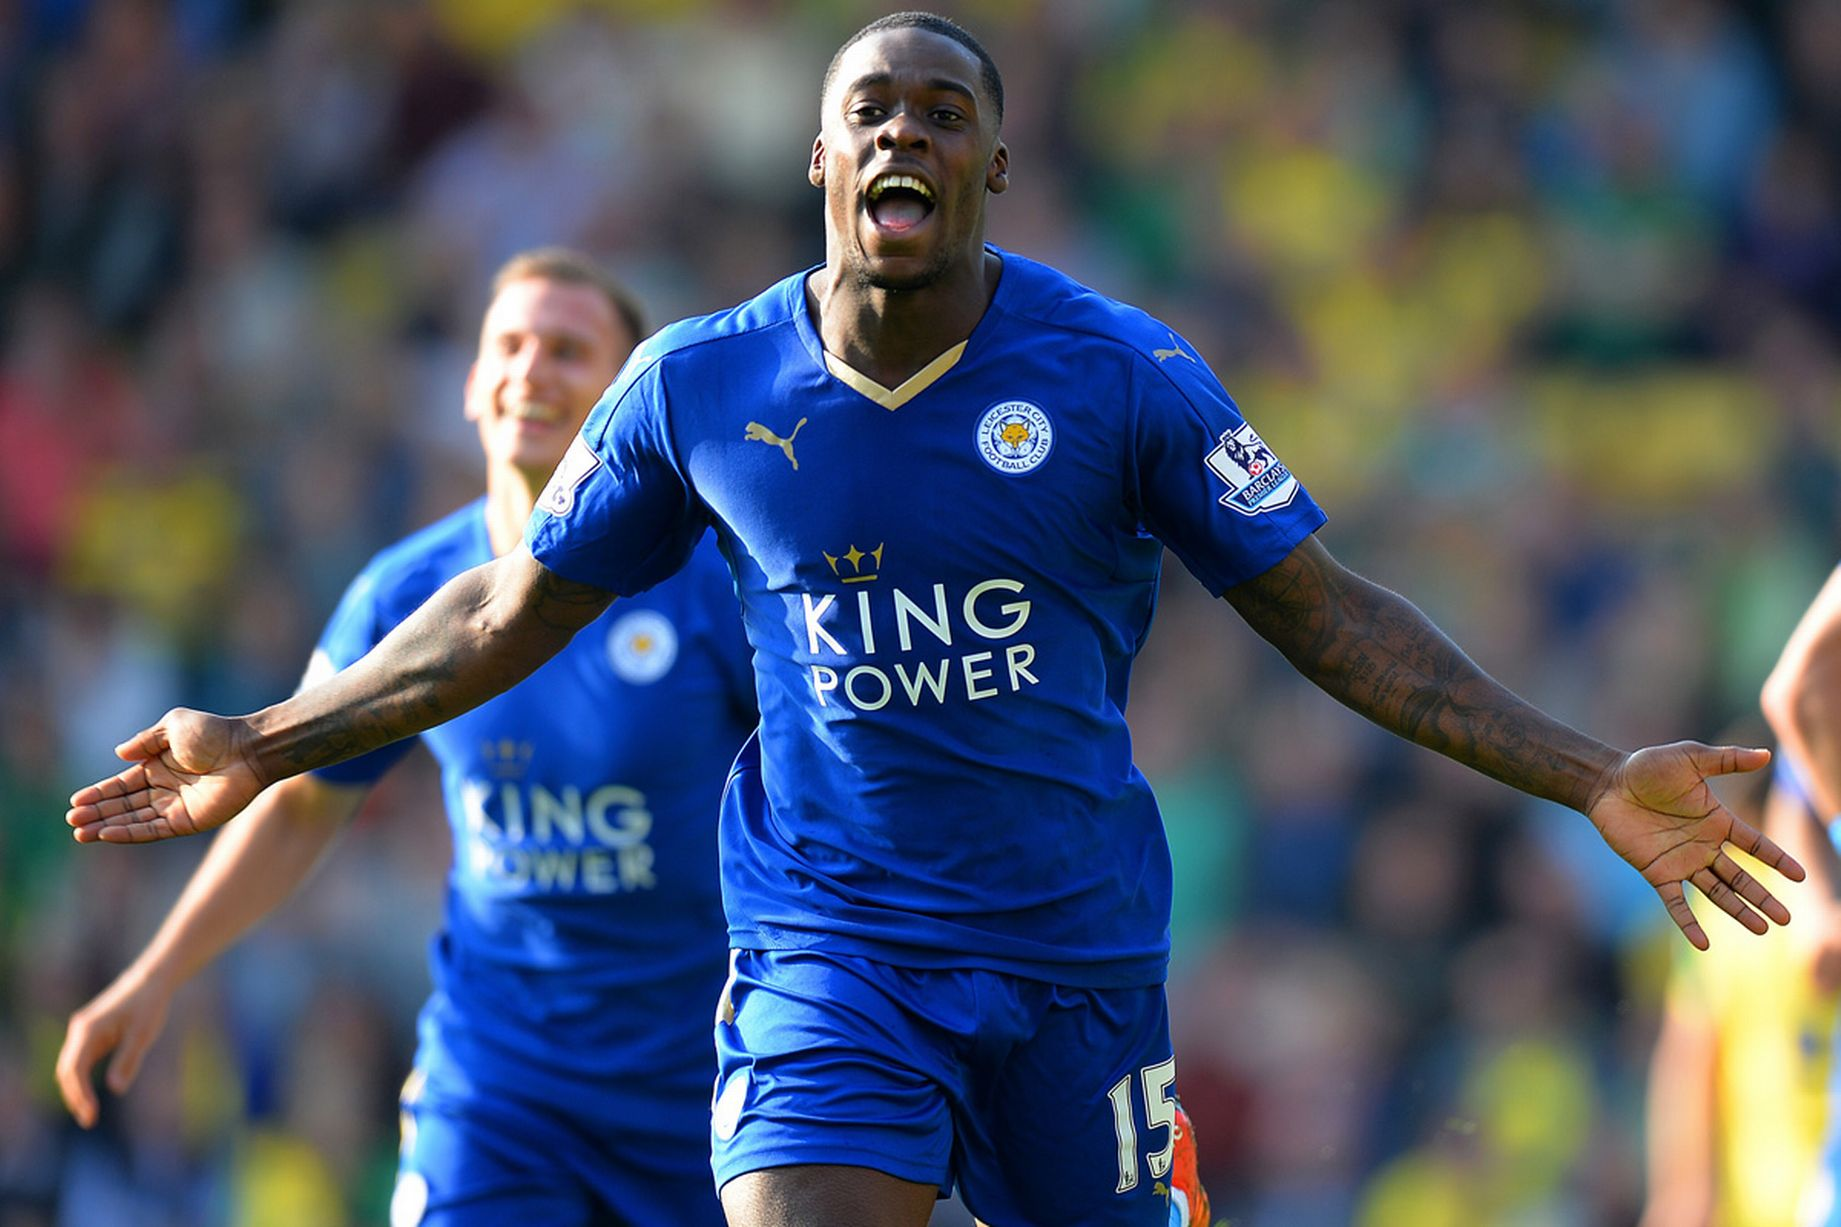 VIDEO: Leicester City winger Jeffrey Schlupp talks about his return from injury and game against Newcastle